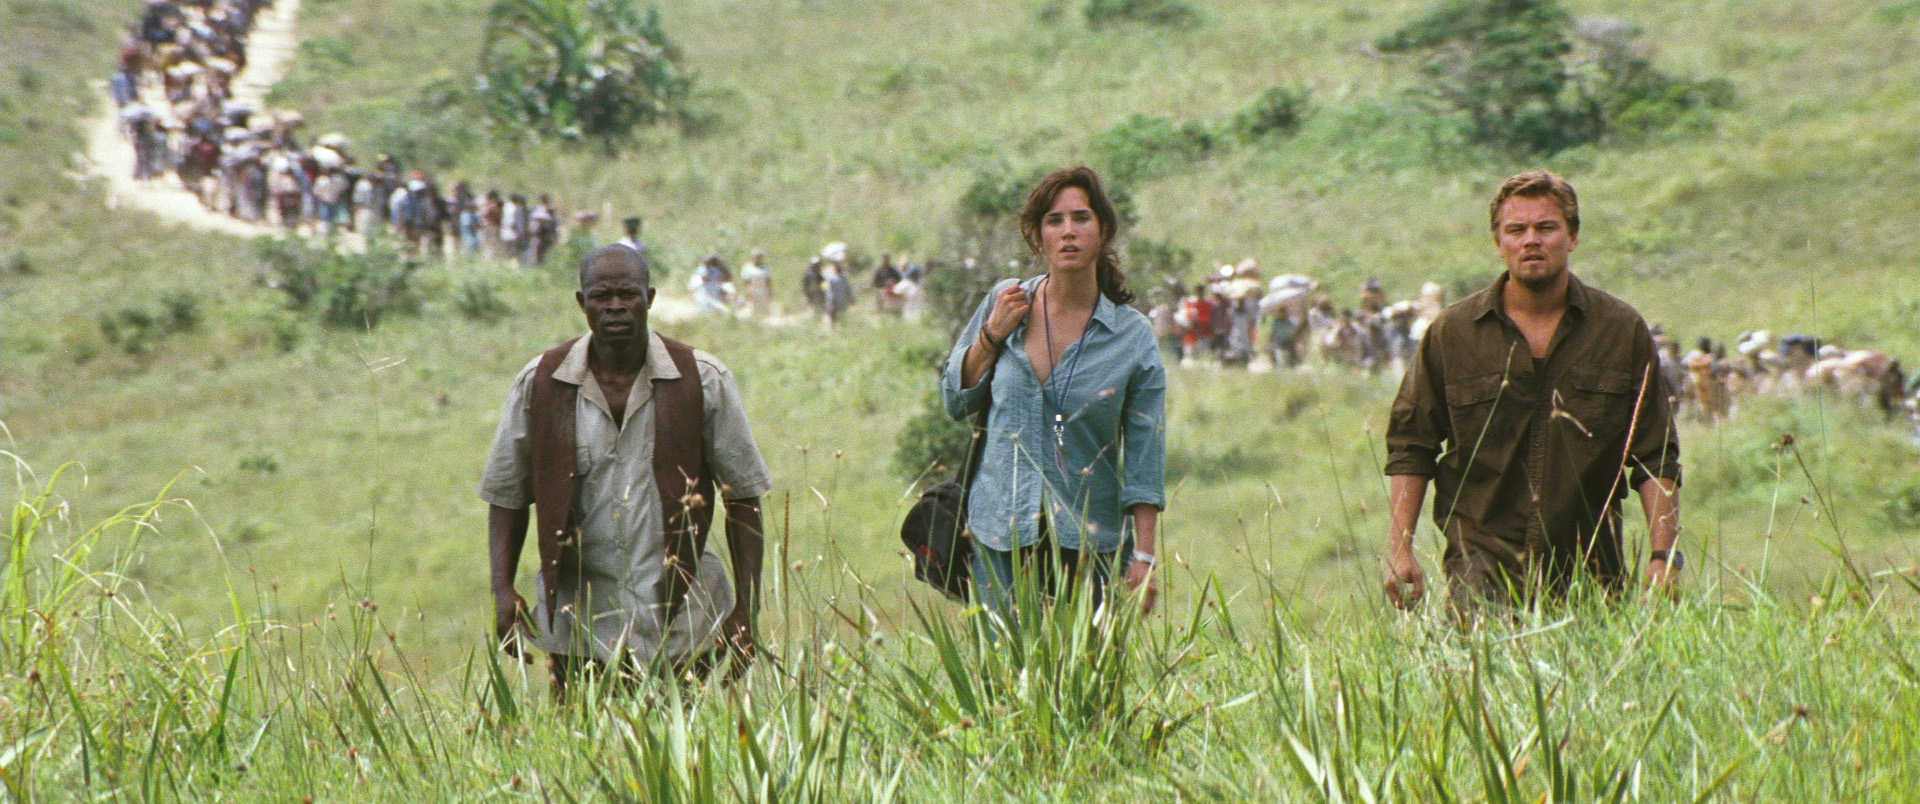 Blood diamond (2006) d'Edward Zwick